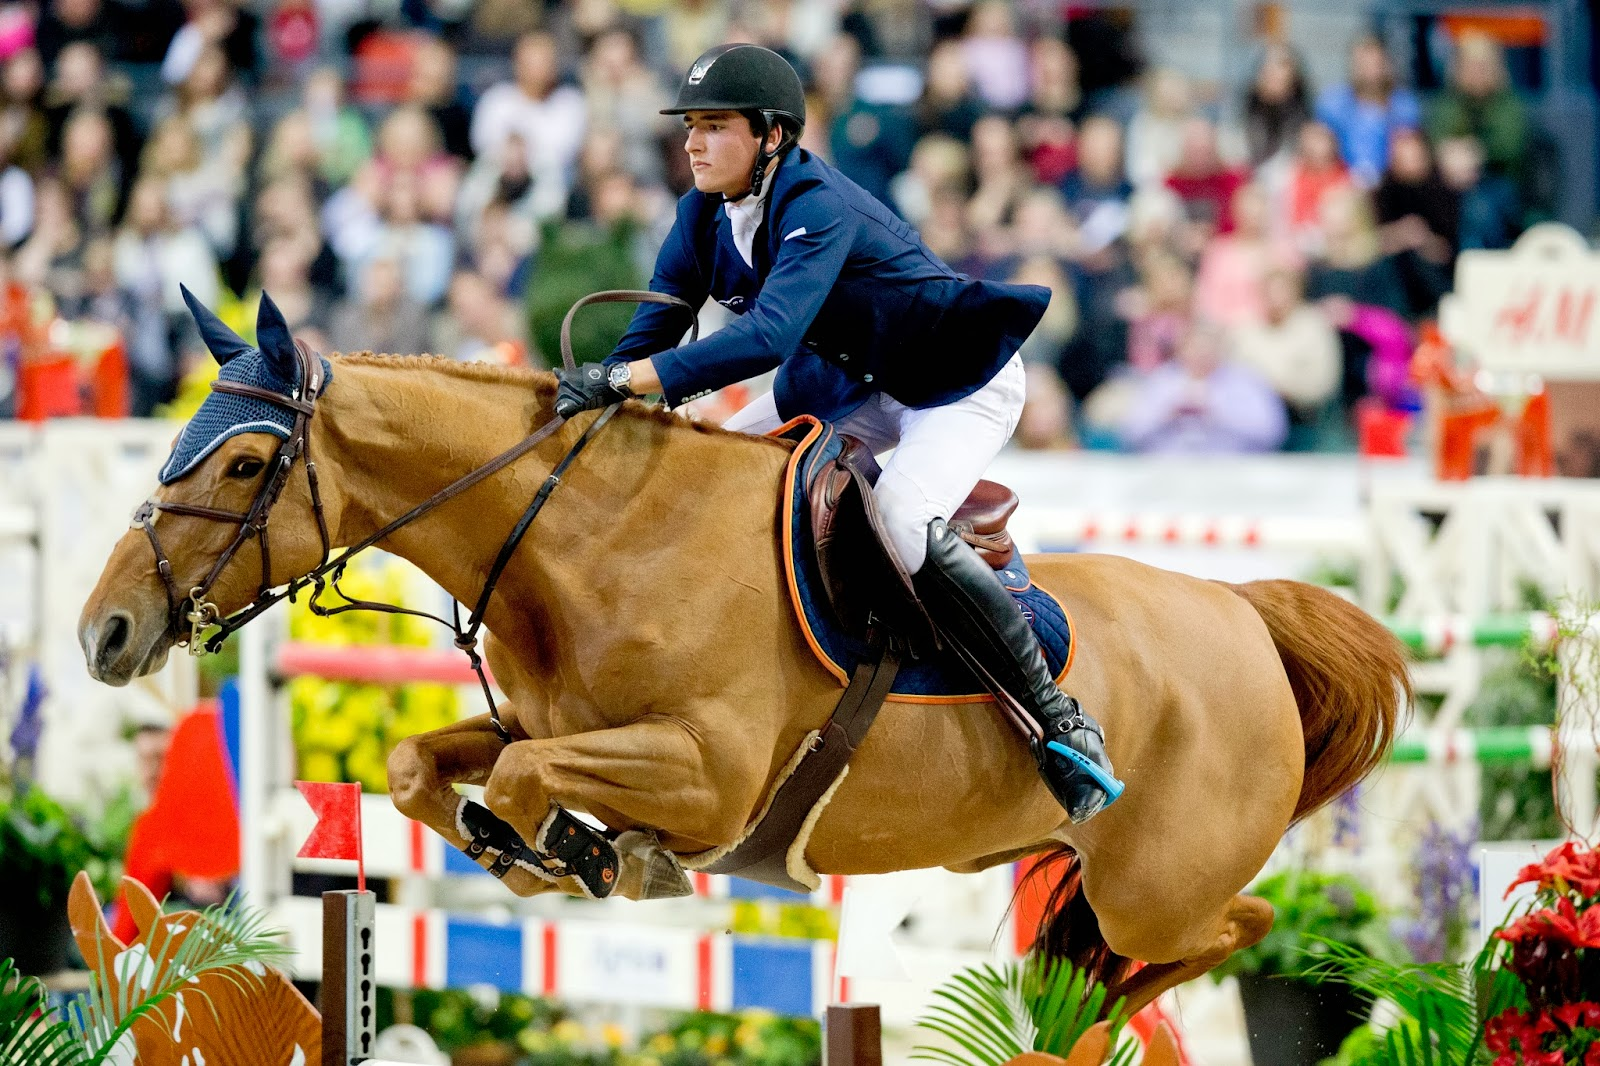 Belgium, Competition, Contets, FEI World Cup, FEI World Cup jumping competition, Gothenburg, Horse, Horse Jump, Horse Show, Maikel van der Vleuten, Marcus Ehning, Nicola Philippaerts, Sports, World Cup,